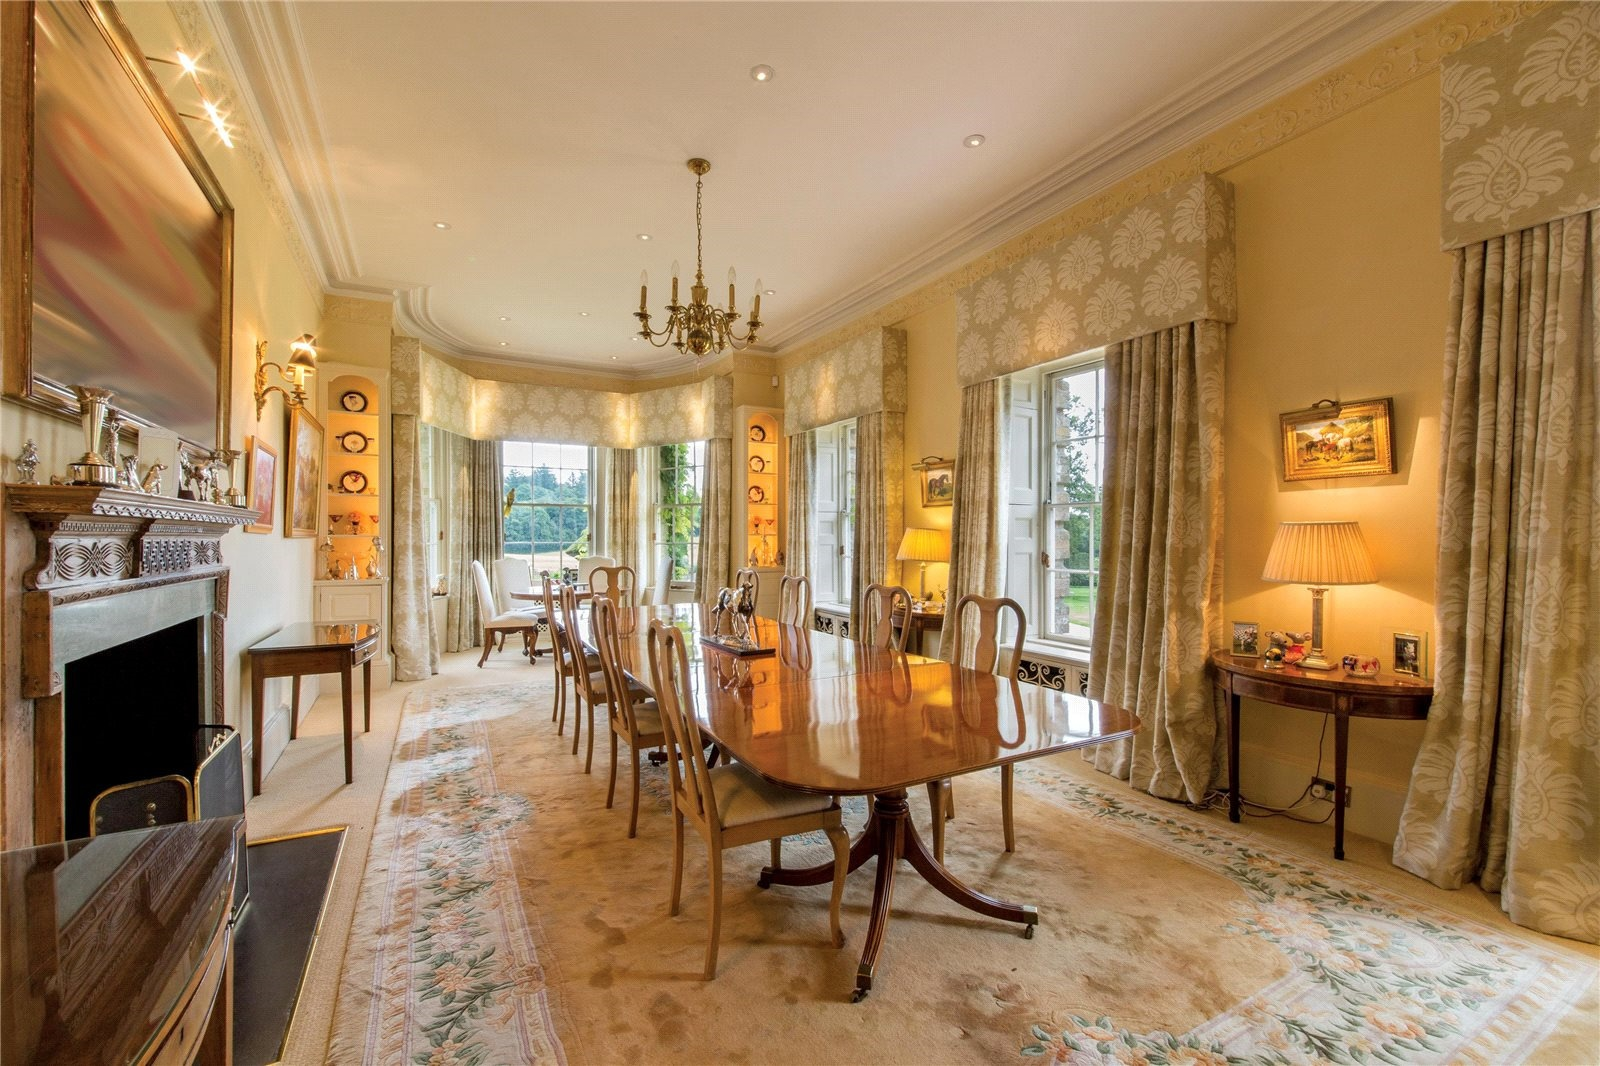 """Holly Golightly might admire """"the quietness and the proud look"""" of this home's charming breakfast nook, overlooking the pastoral grounds and situated just off the rather grand Georgian dining room."""